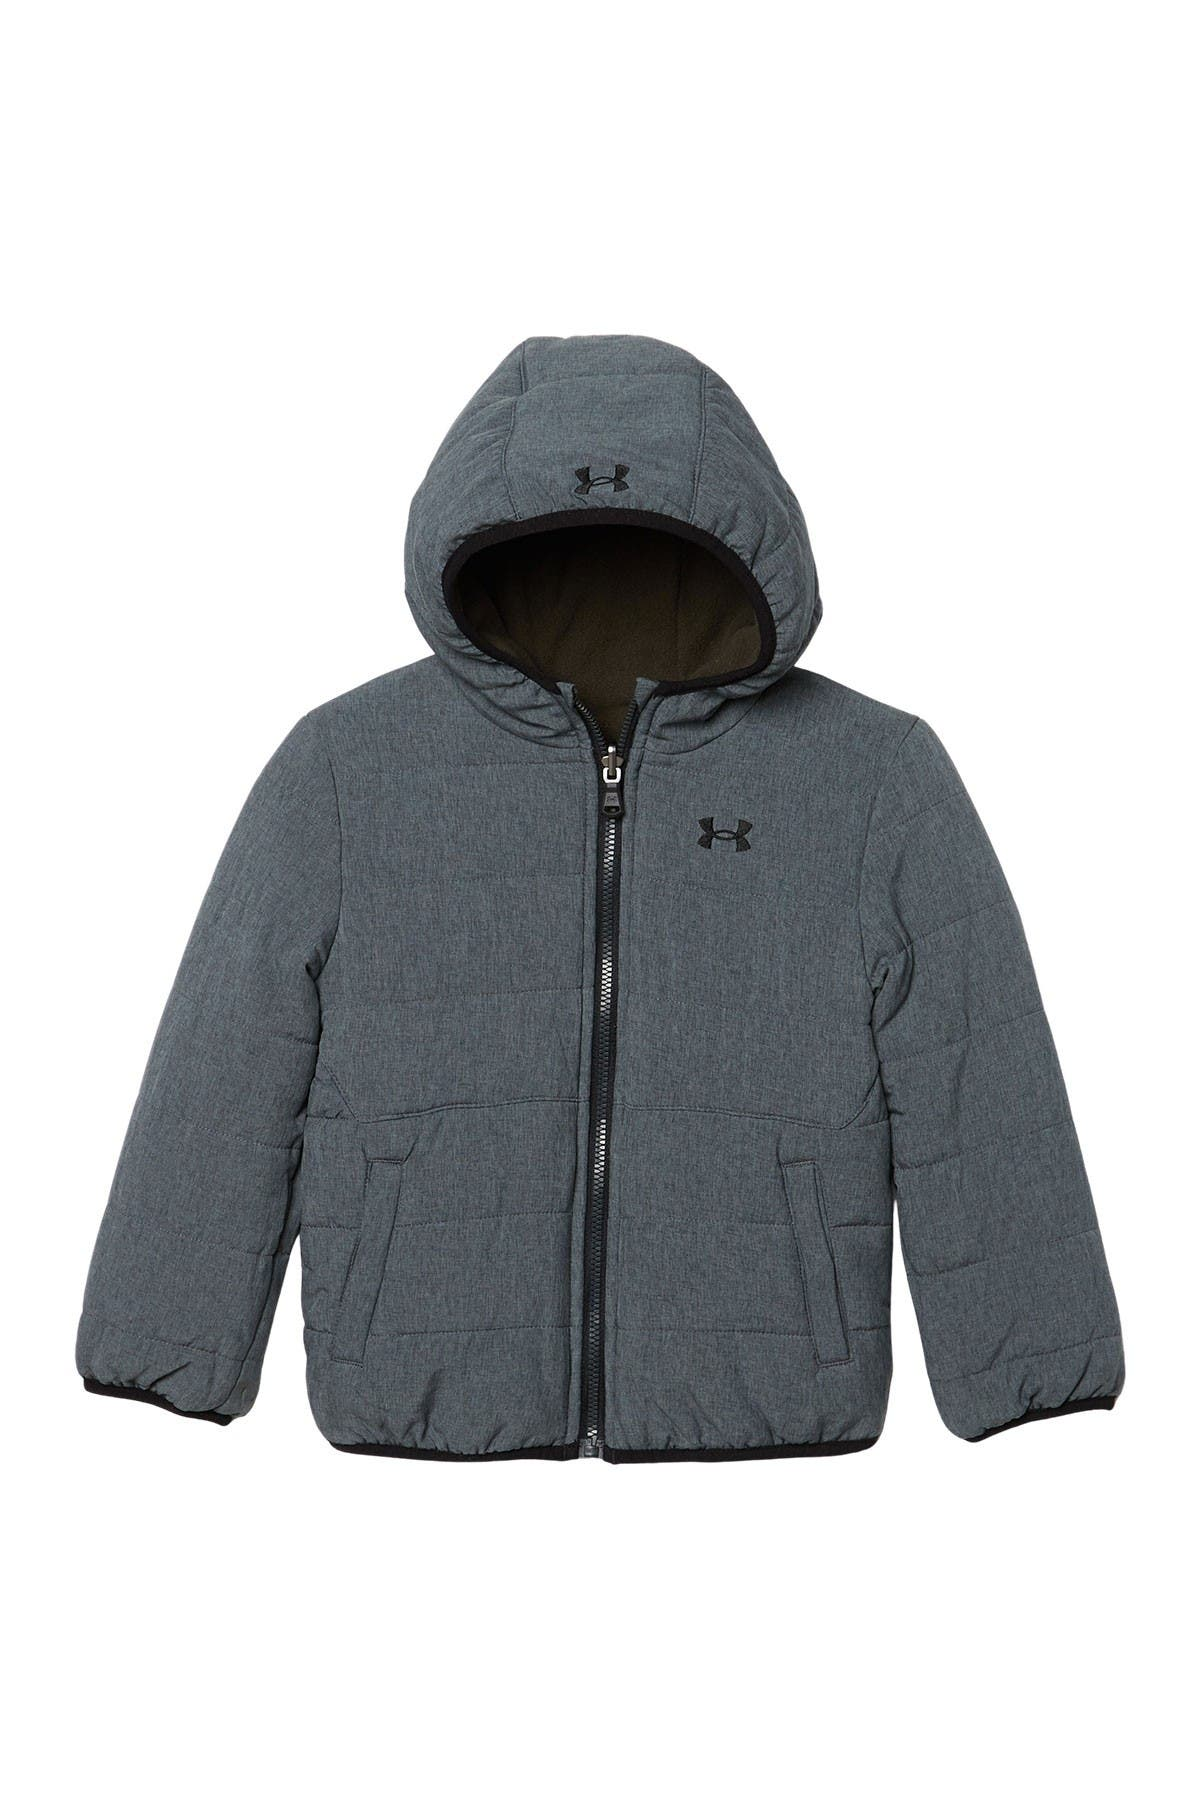 Image of Under Armour Pronto Hooded Reversible Fleece Puffer Jacket